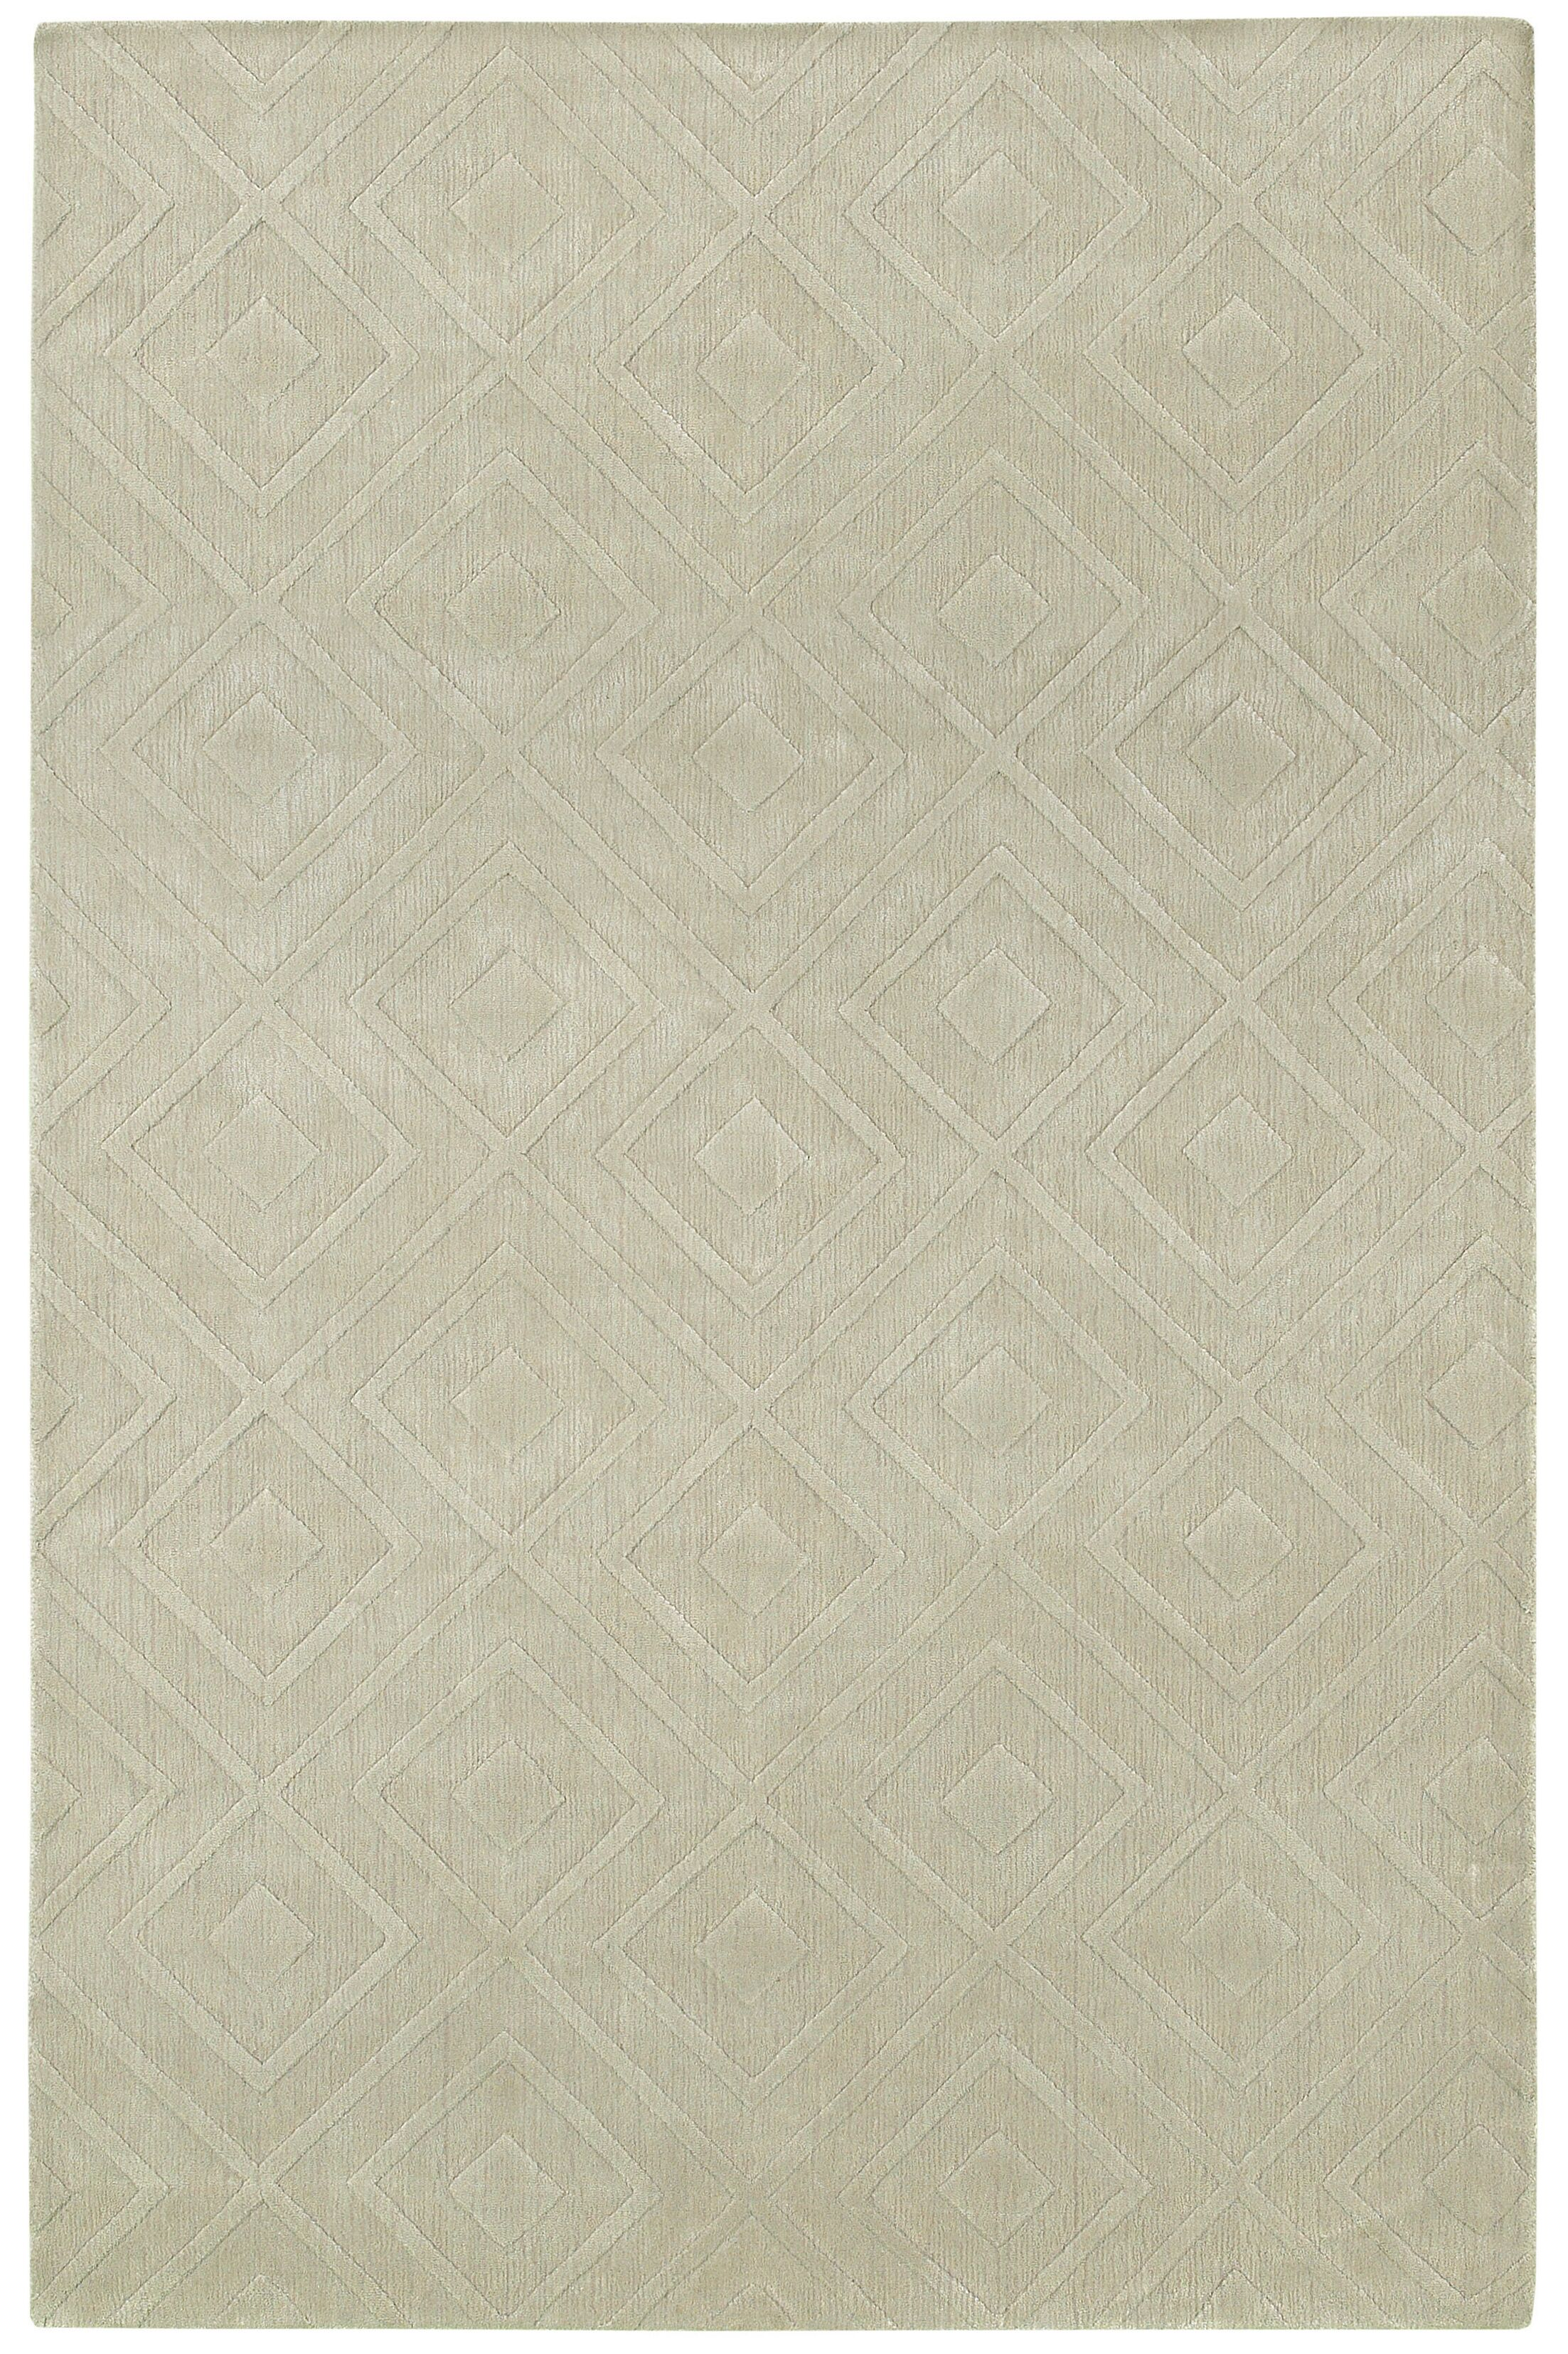 Clarkstown Hand-Loomed Sand Area Rug Rug Size: Rectangle 3'6